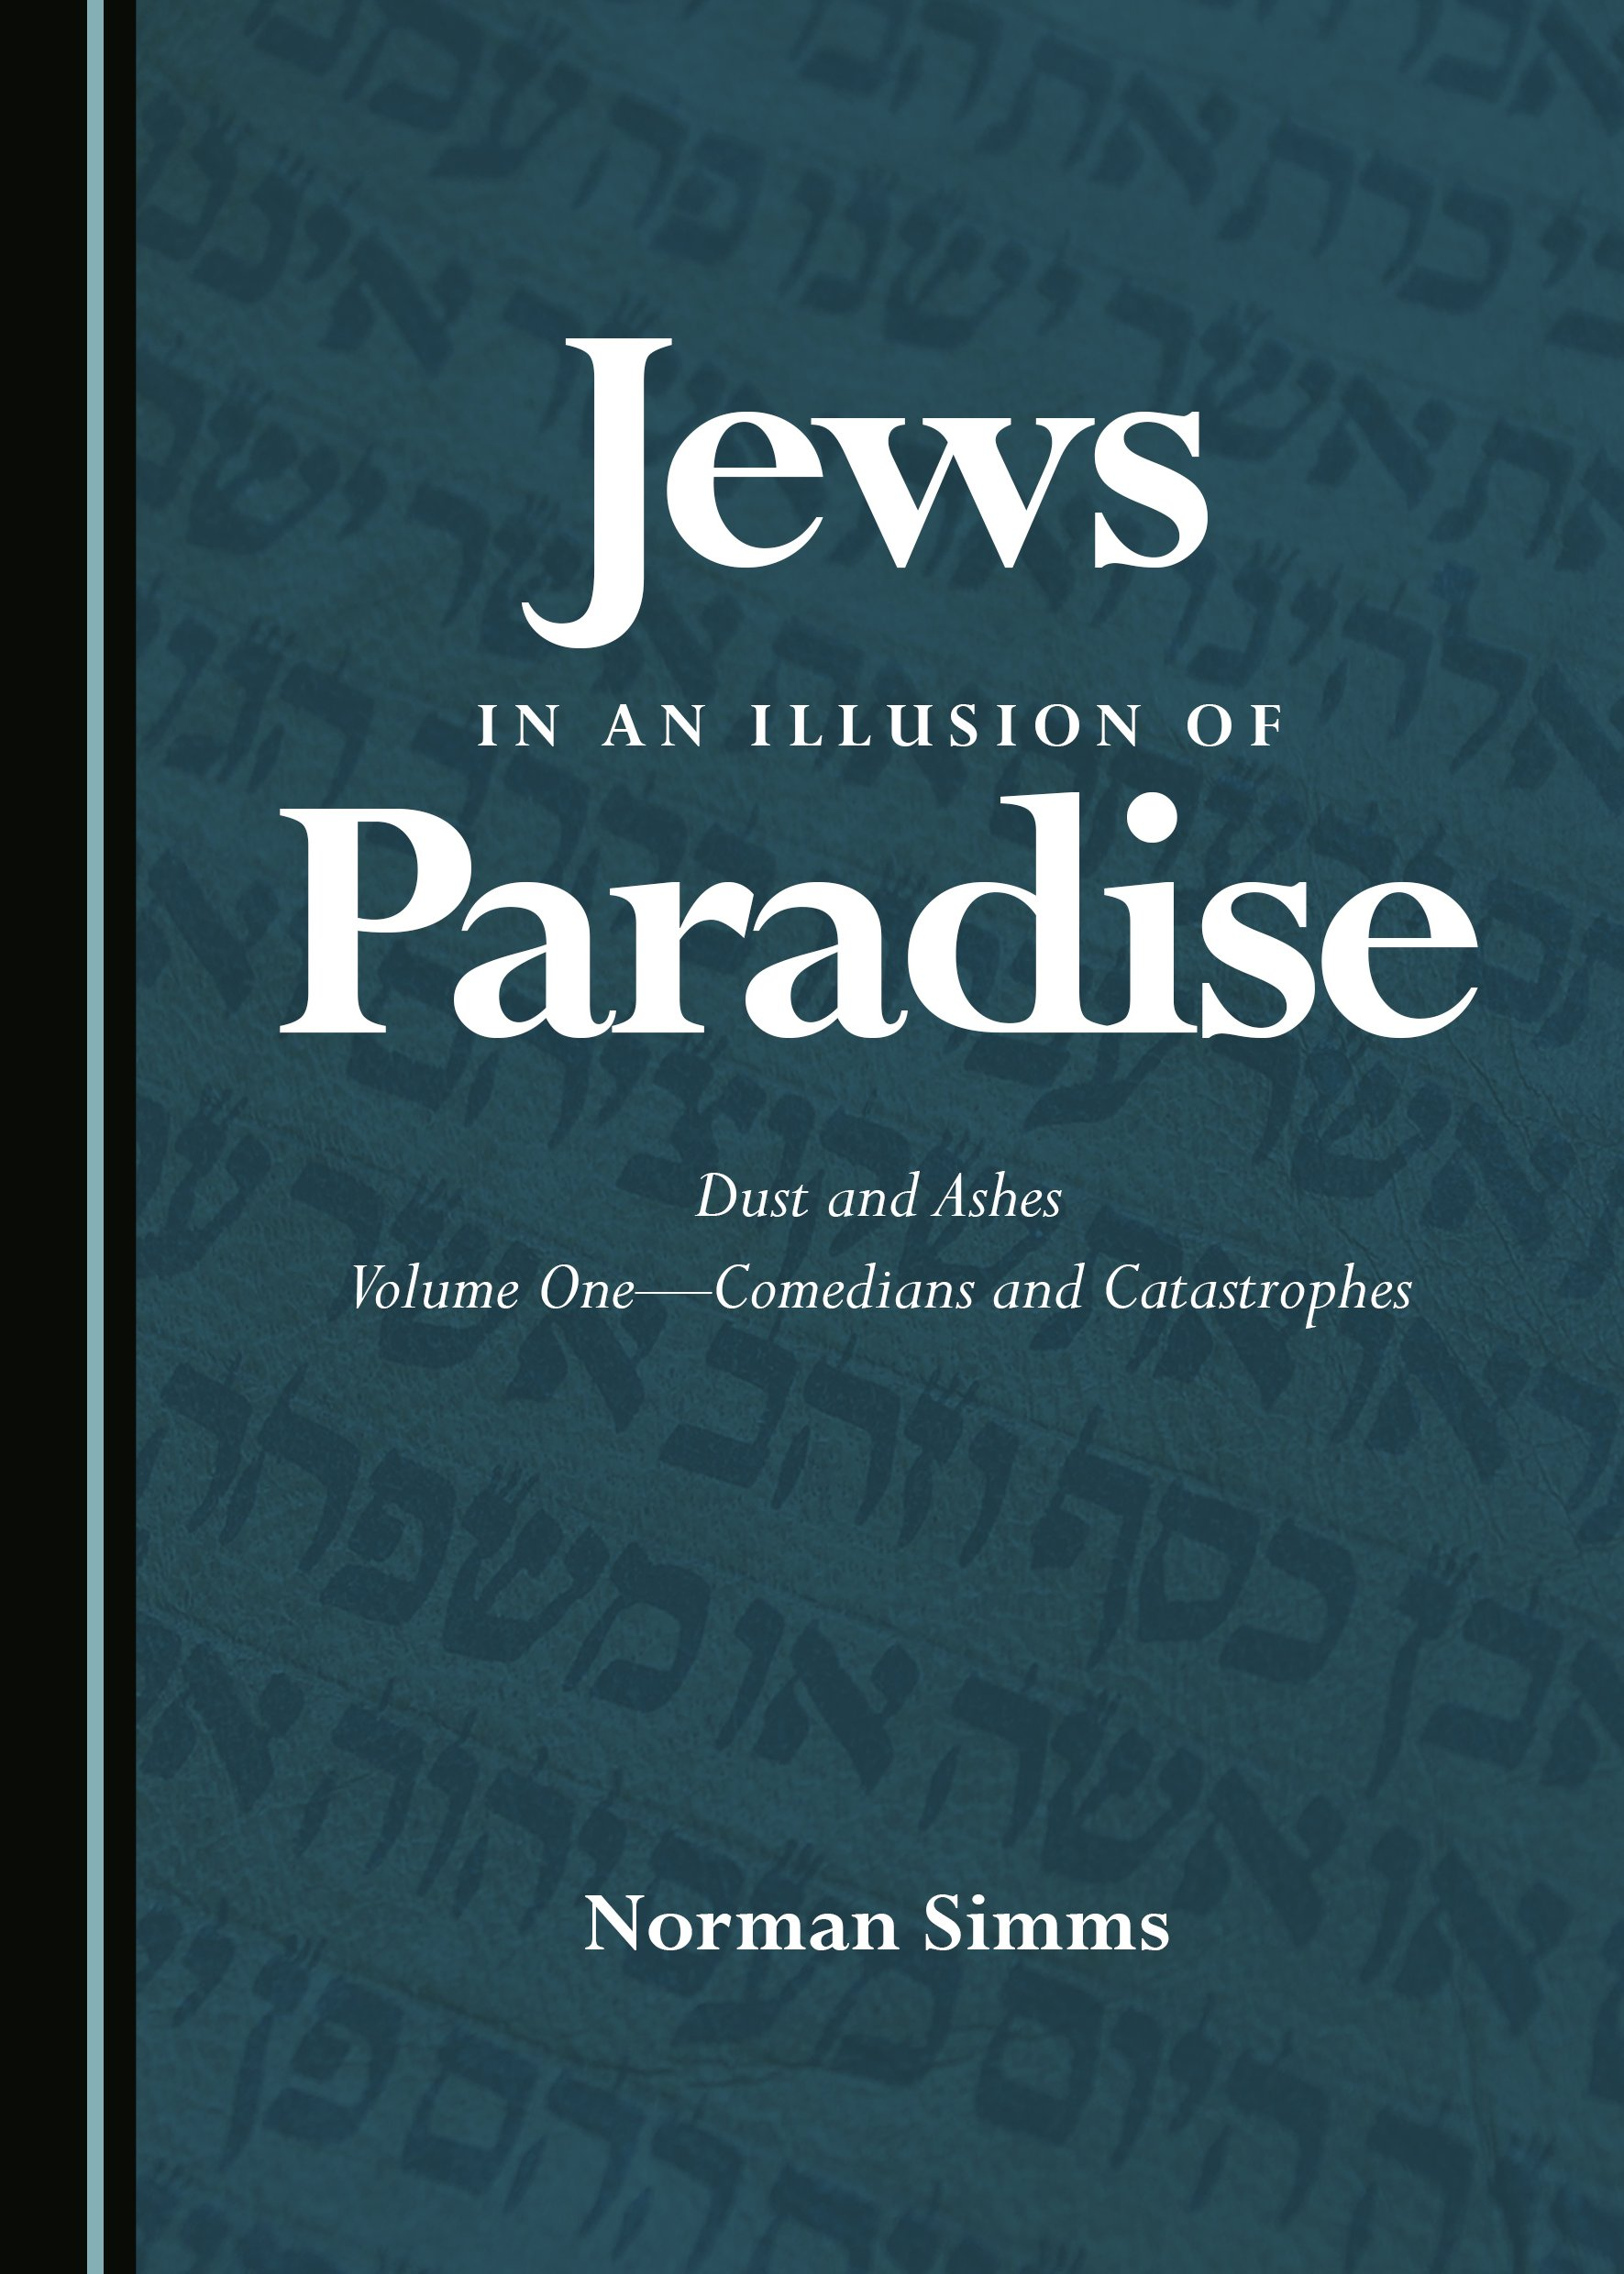 Jews in an Illusion of Paradise: Dust and Ashes Volume One—Comedians and Catastrophes